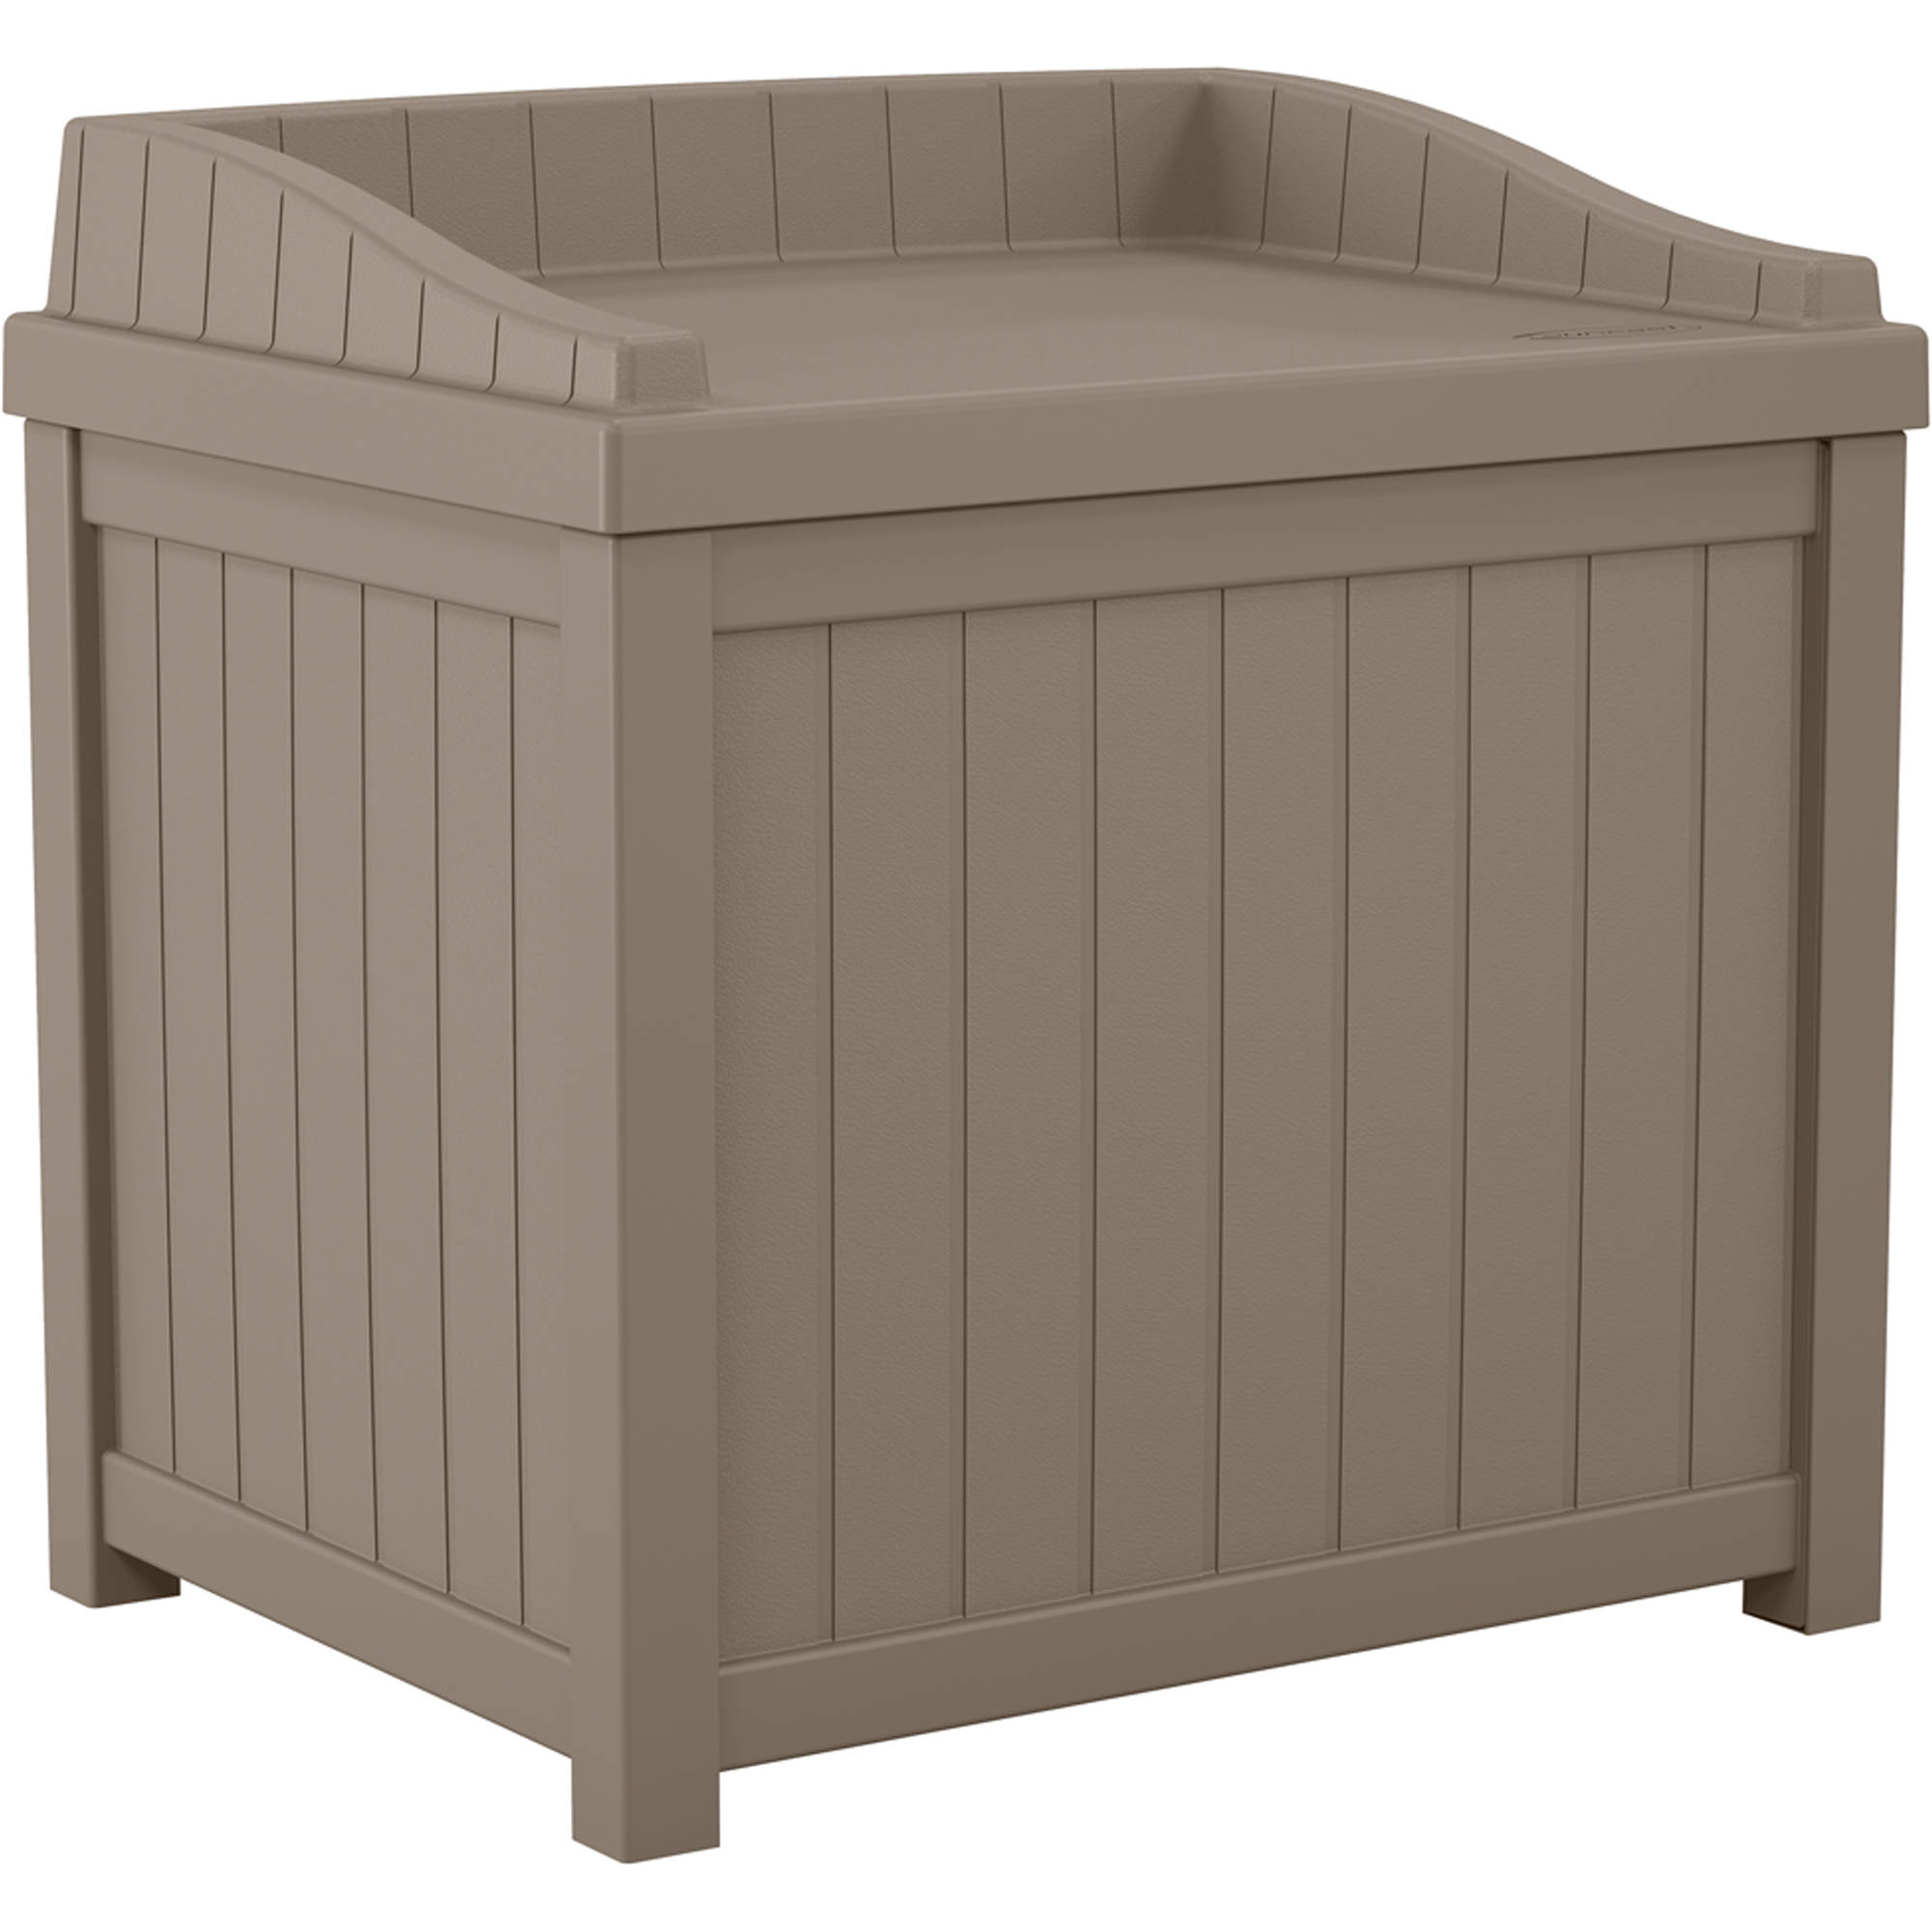 Suncast 22 Gallon Dark Taupe Small Storage Seat Deck Box SS1000DTD